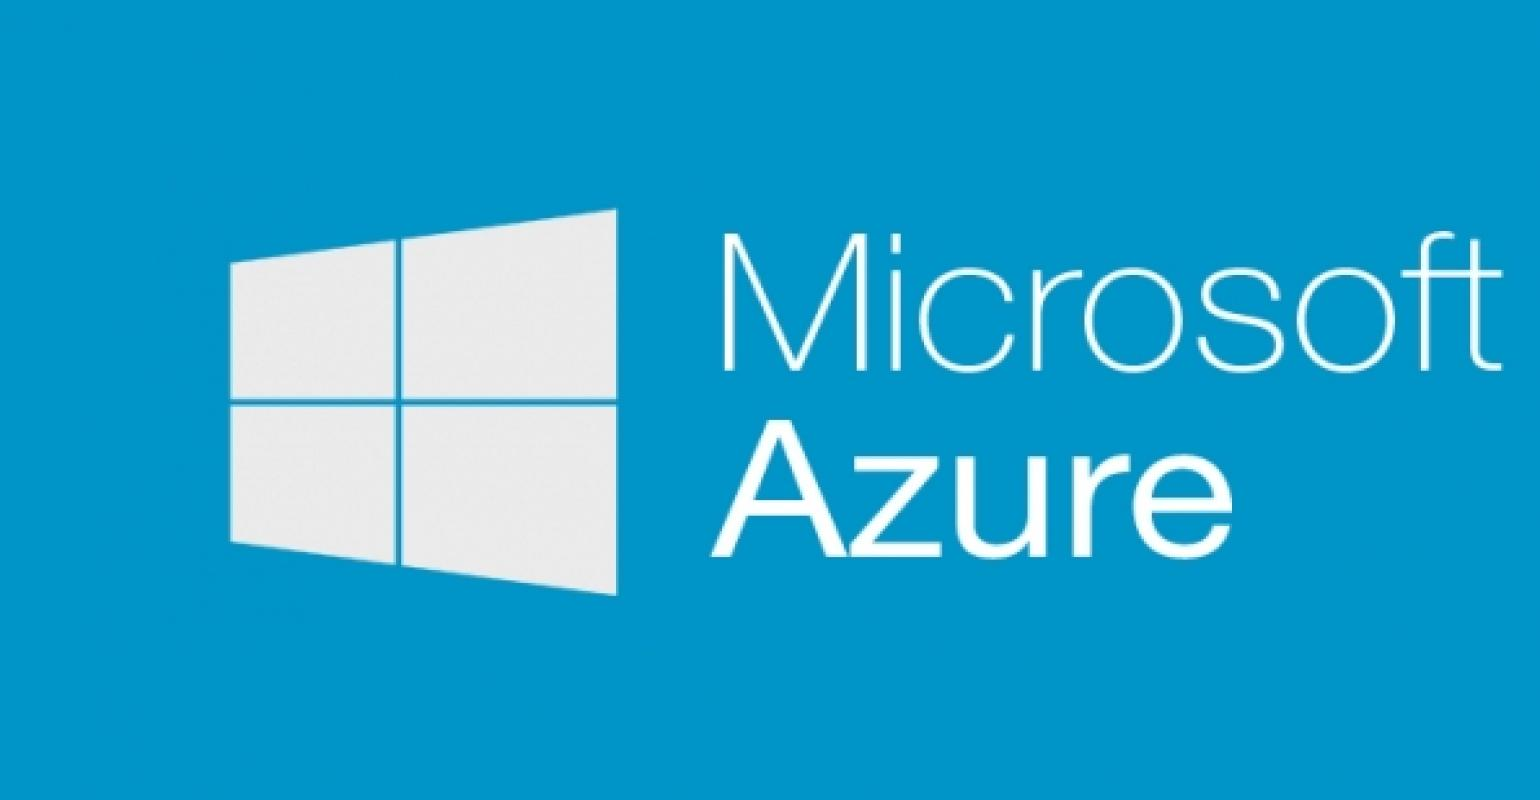 View available regions for Azure services using PowerShell